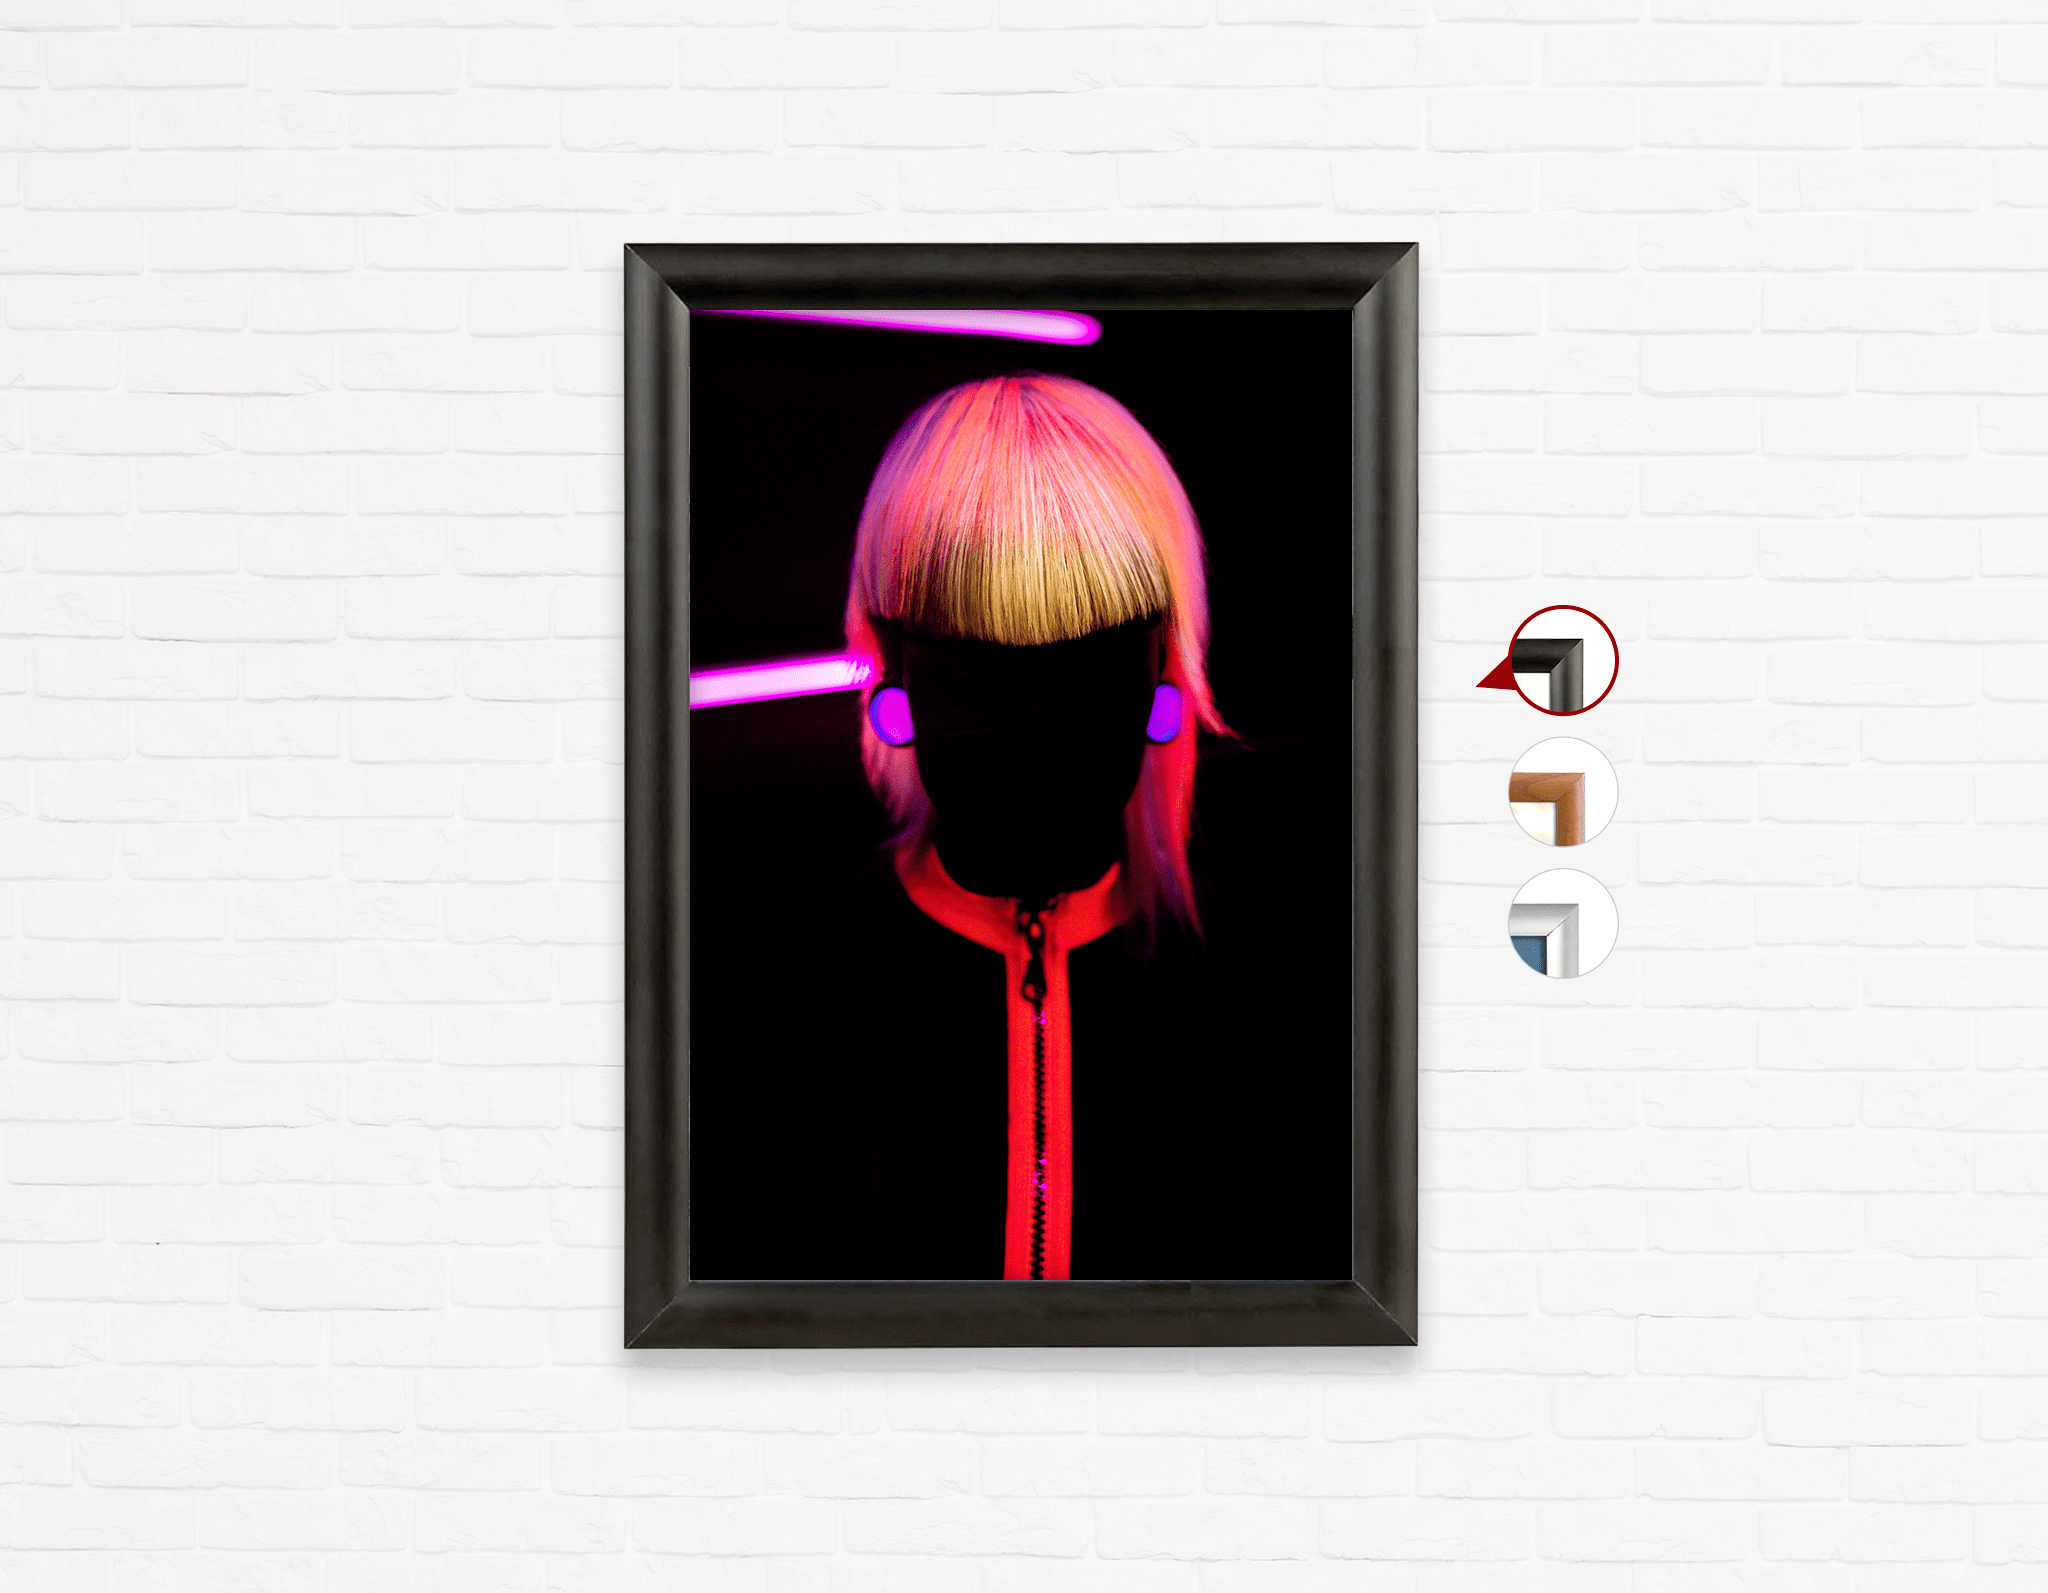 Salon Poster Click Frames, One-Sided: Bob with Neon Colored Hairstyle in Silhouette